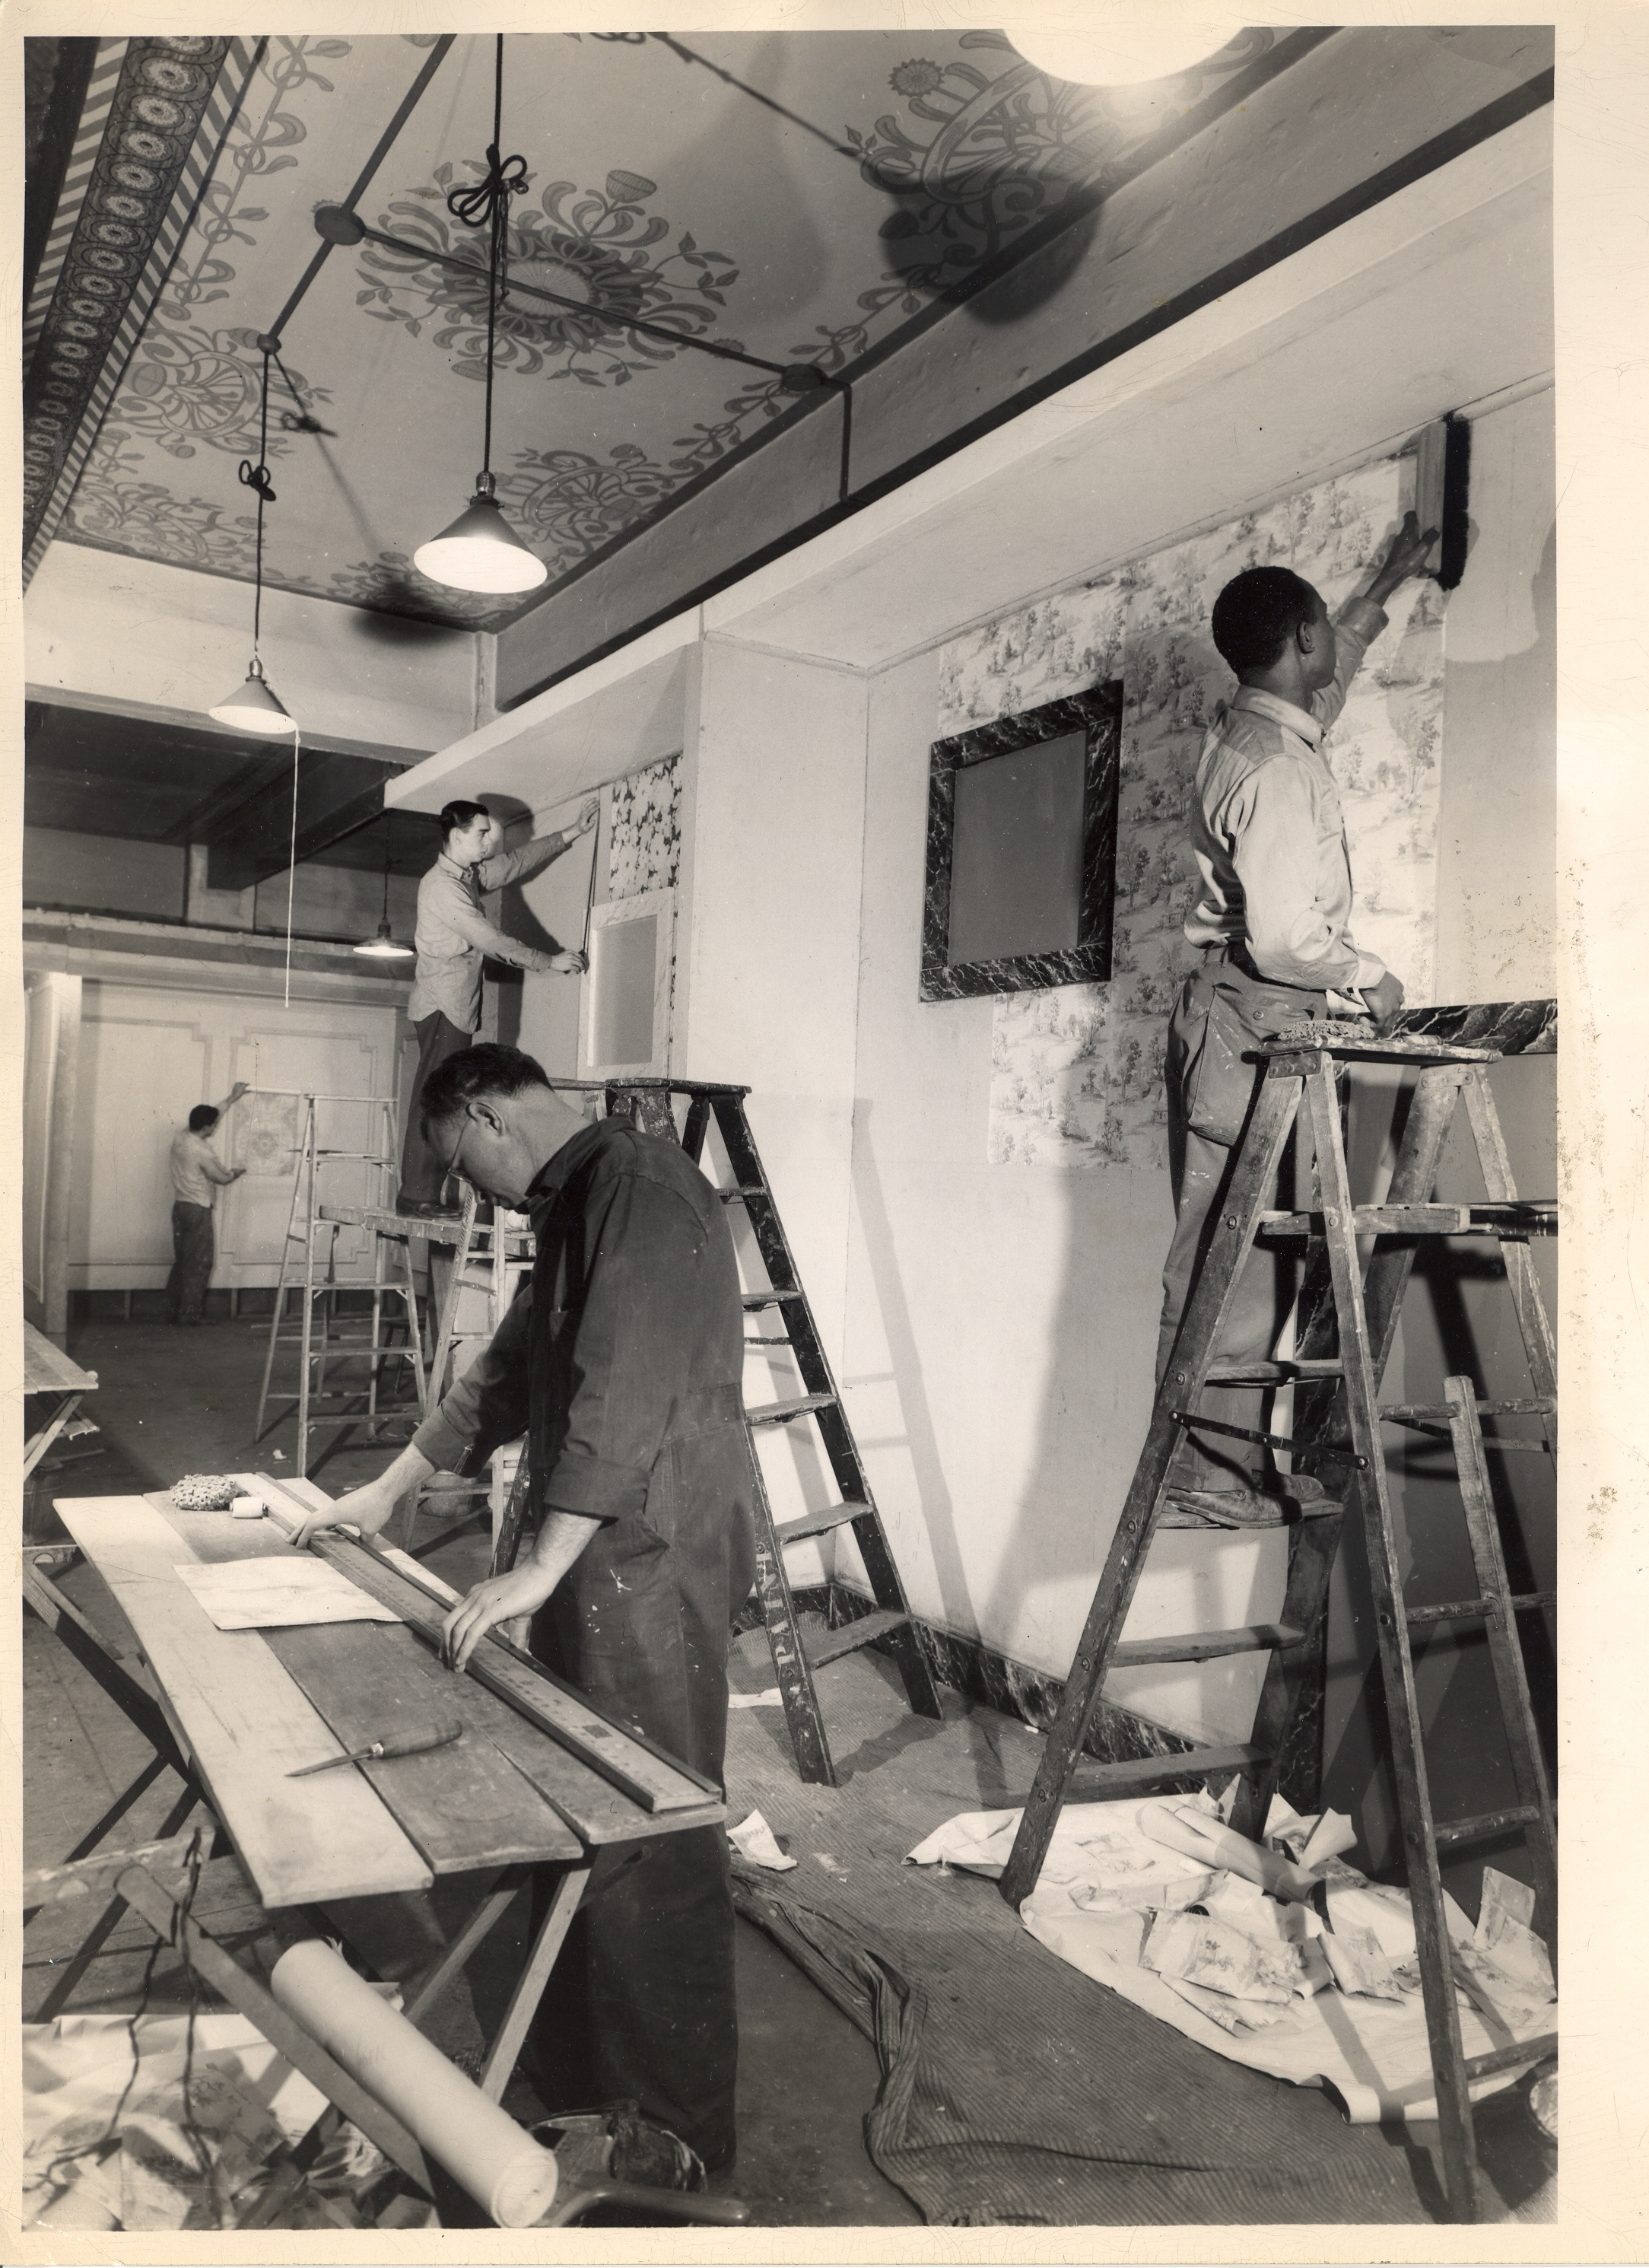 Students in the Paper Hanging Department at the New York Trade School are shown in various stages of hanging paper. Black and white photograph.